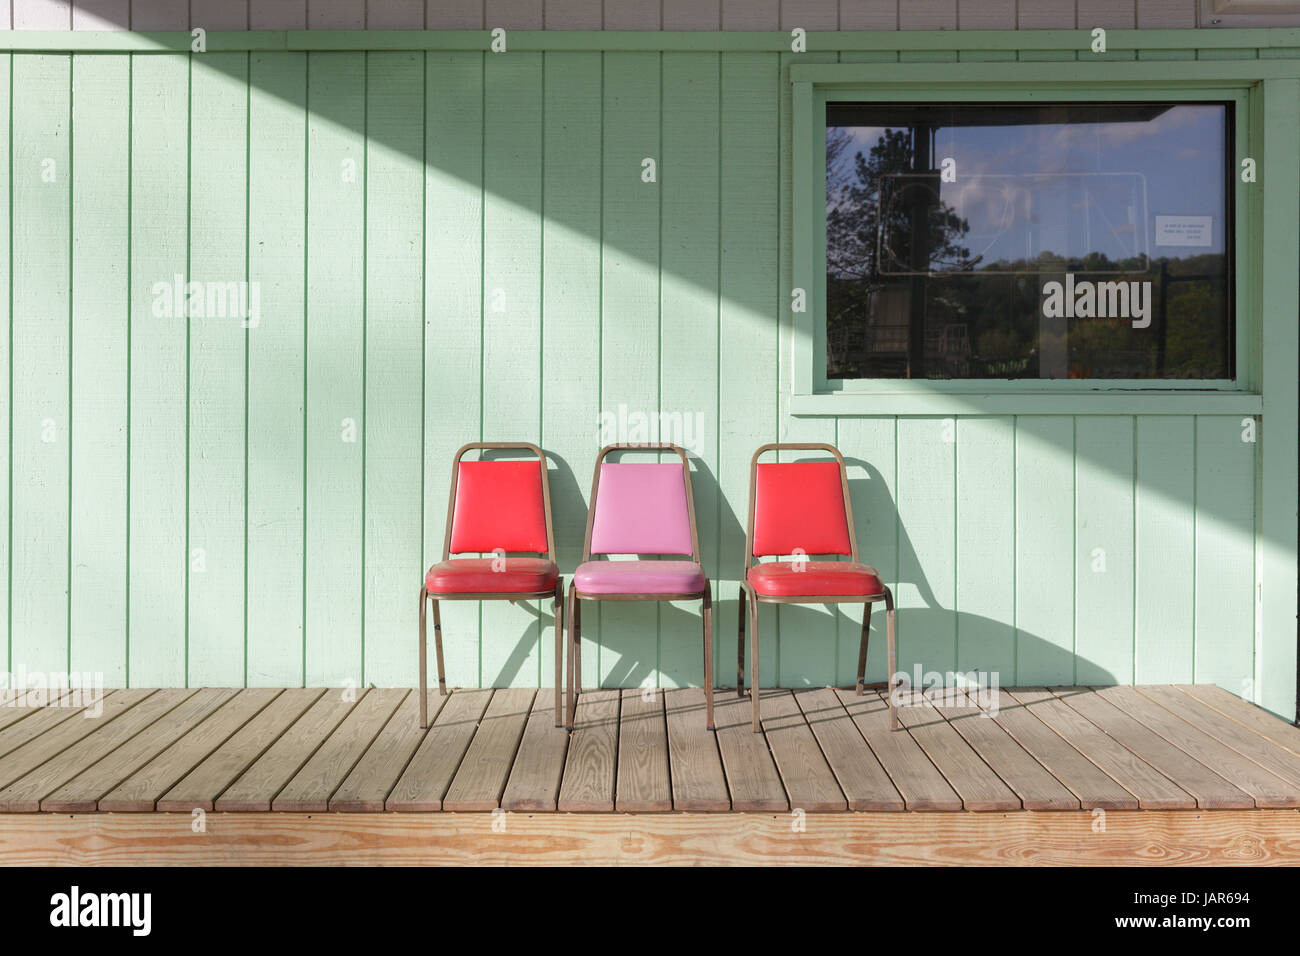 Amsterdam, New York, USA – May 6, 2017: An outdoor 'waiting room' at a gas station in the Mohawk Valley - Stock Image